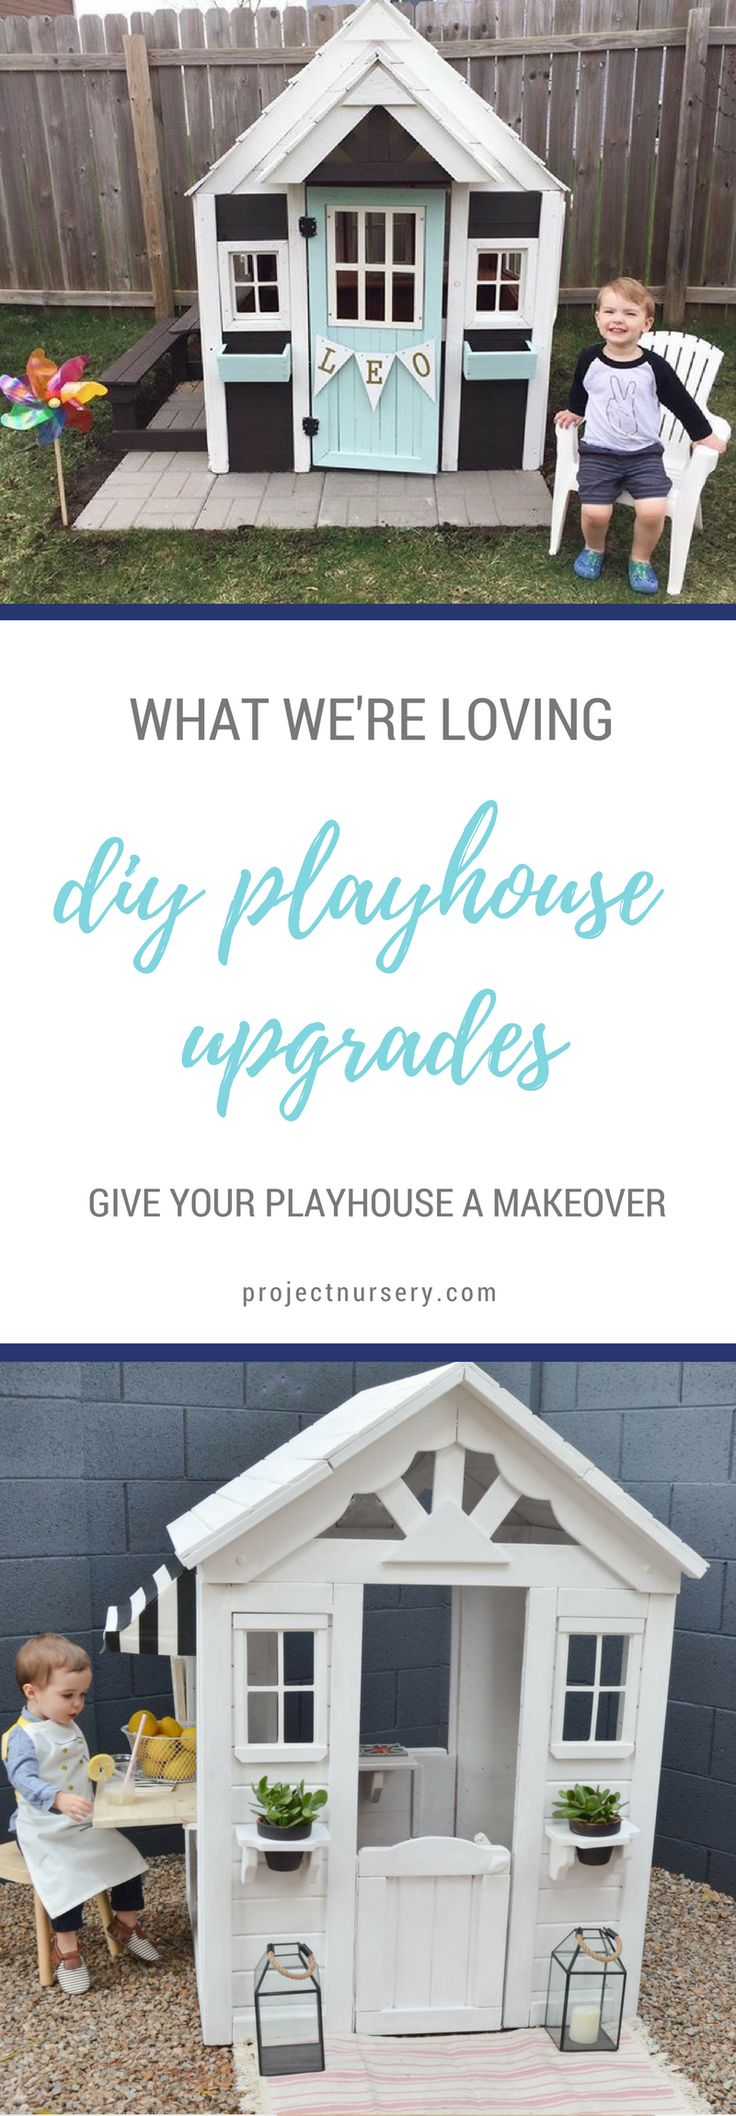 These DIY playhouse upgrades are SUCH a hit right now! Come see some of our favorite playhouse transformations to get inspired...